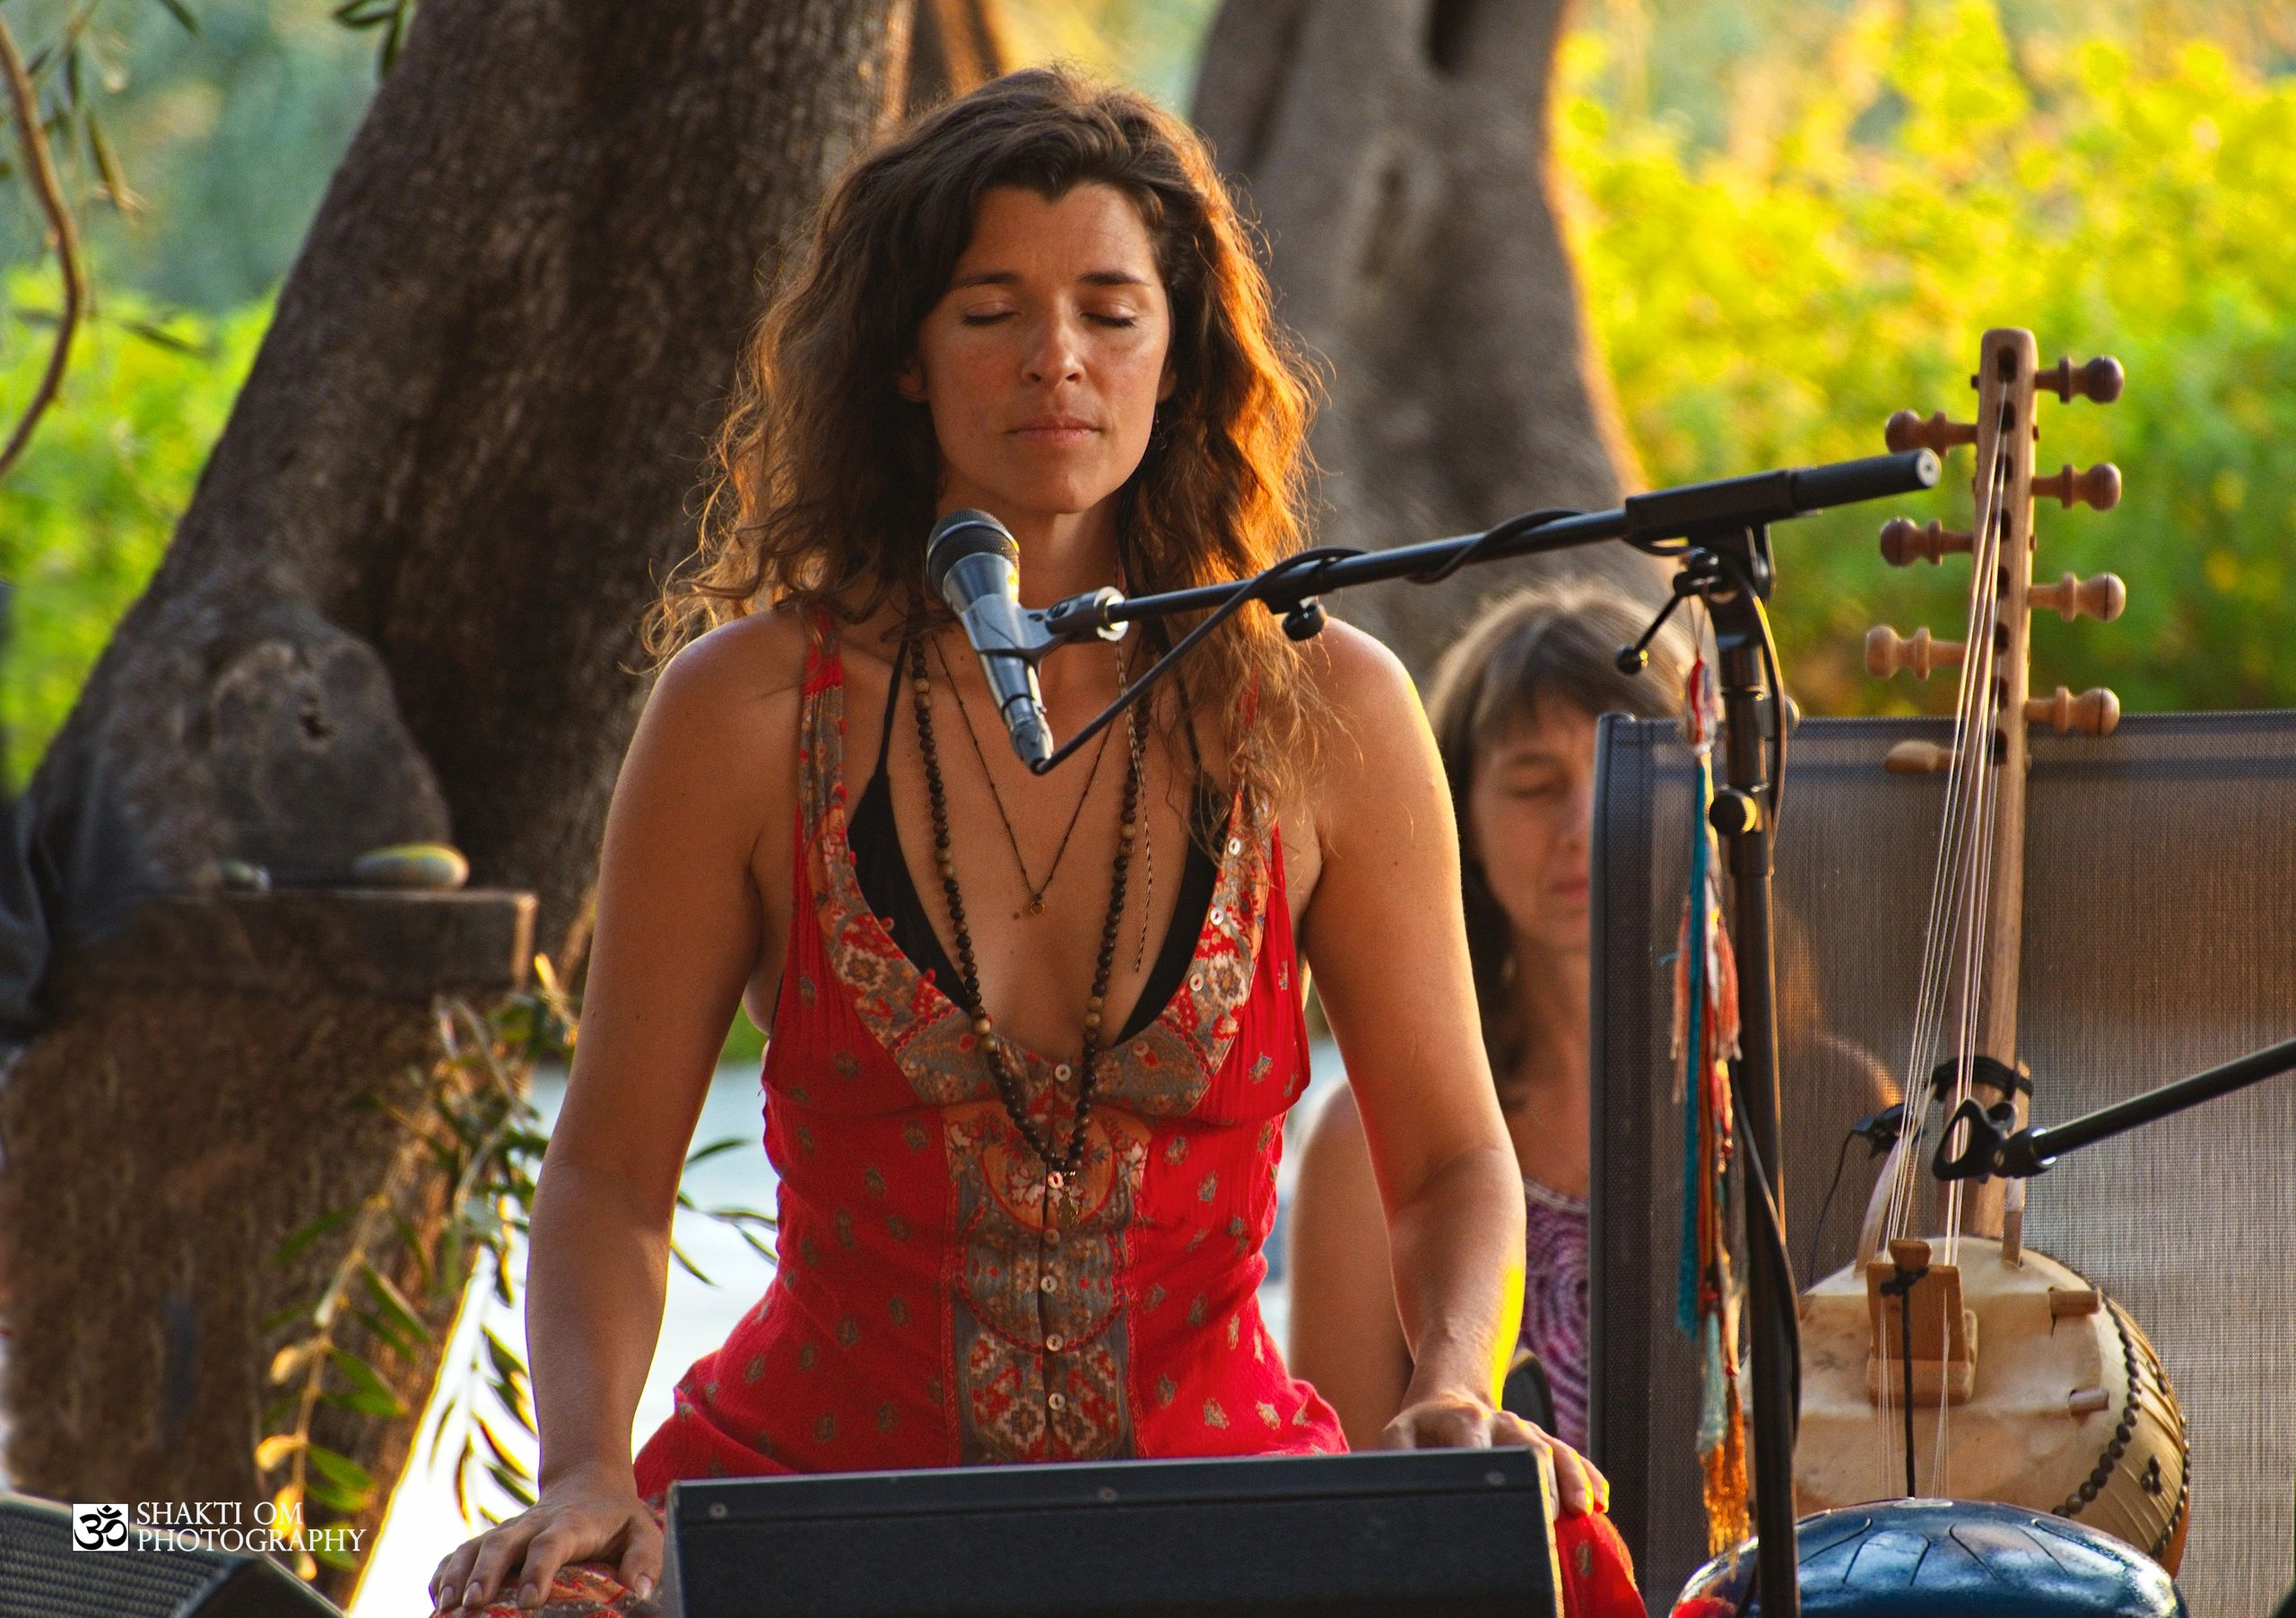 'Temple Sunset' concert at Arillas, during Gayatri festival with Deva Premal .Photo by Shakti Om